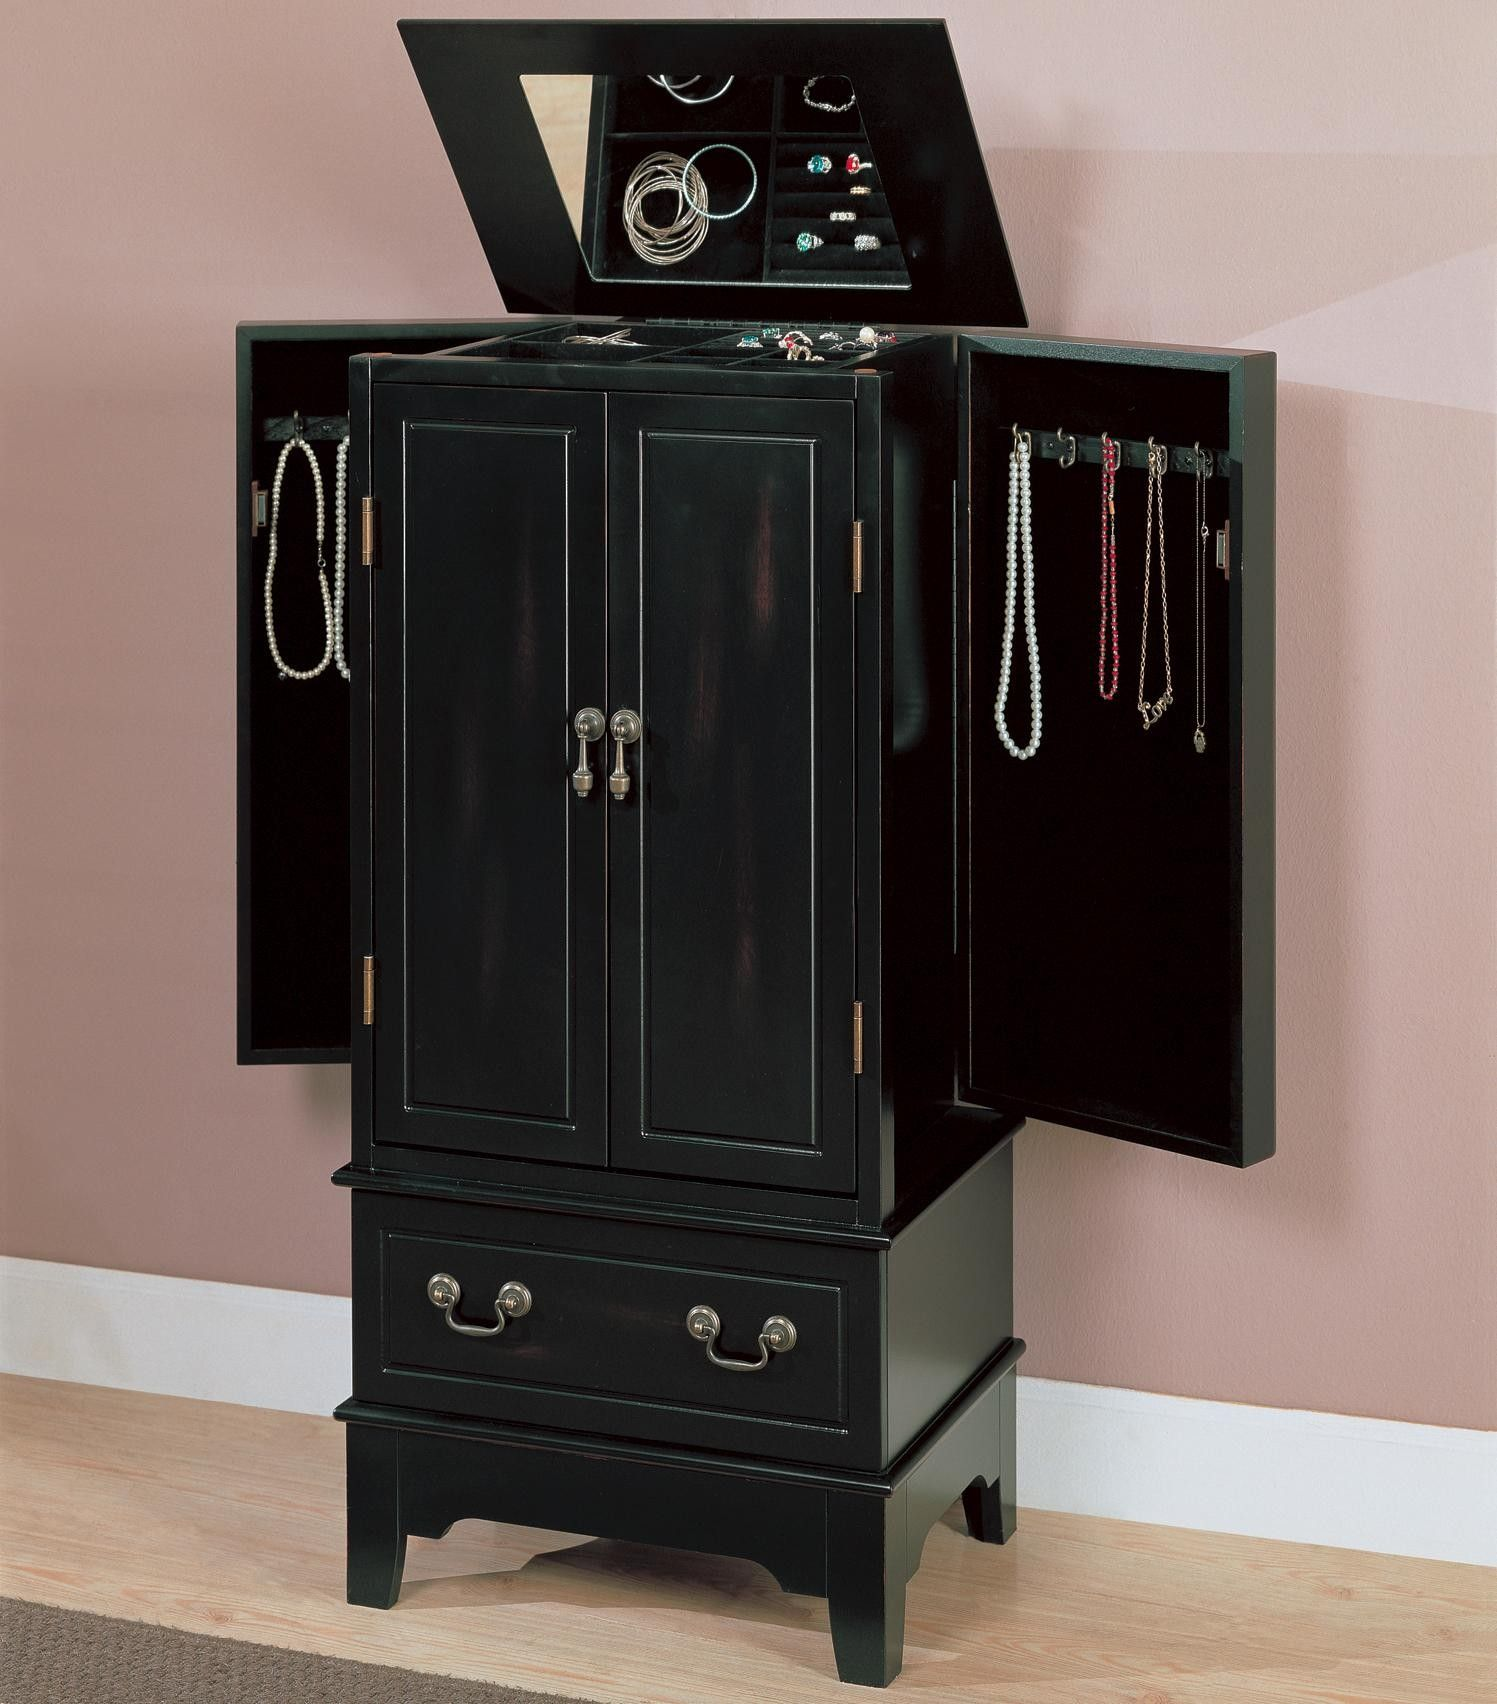 Best Jewelry Armoire Kohls Furnishing Your Unusual Home Furniture